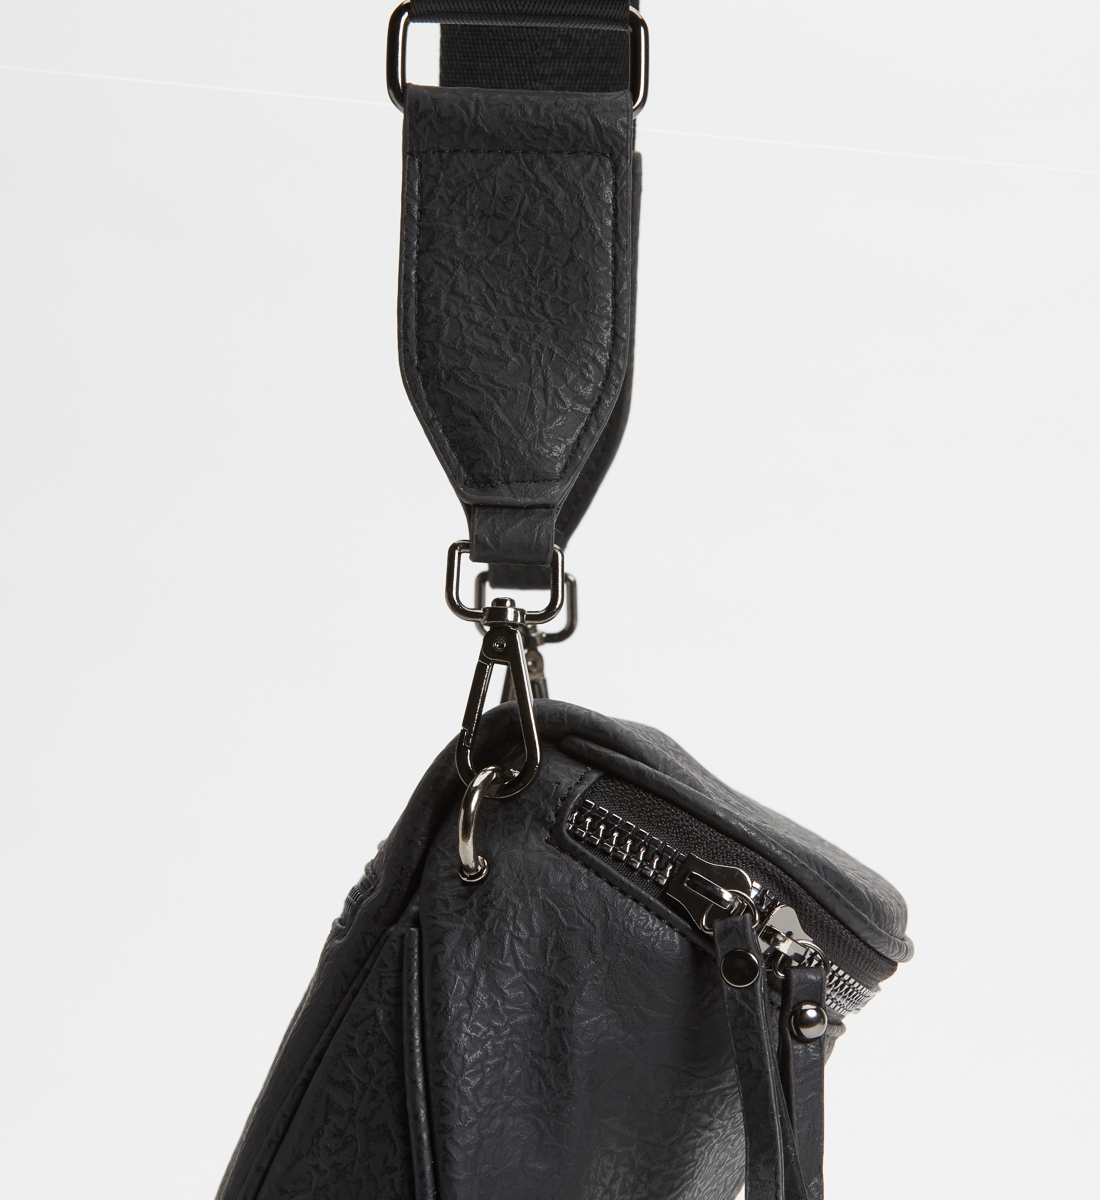 Zip Saddle Bag,Black Alt Image 1